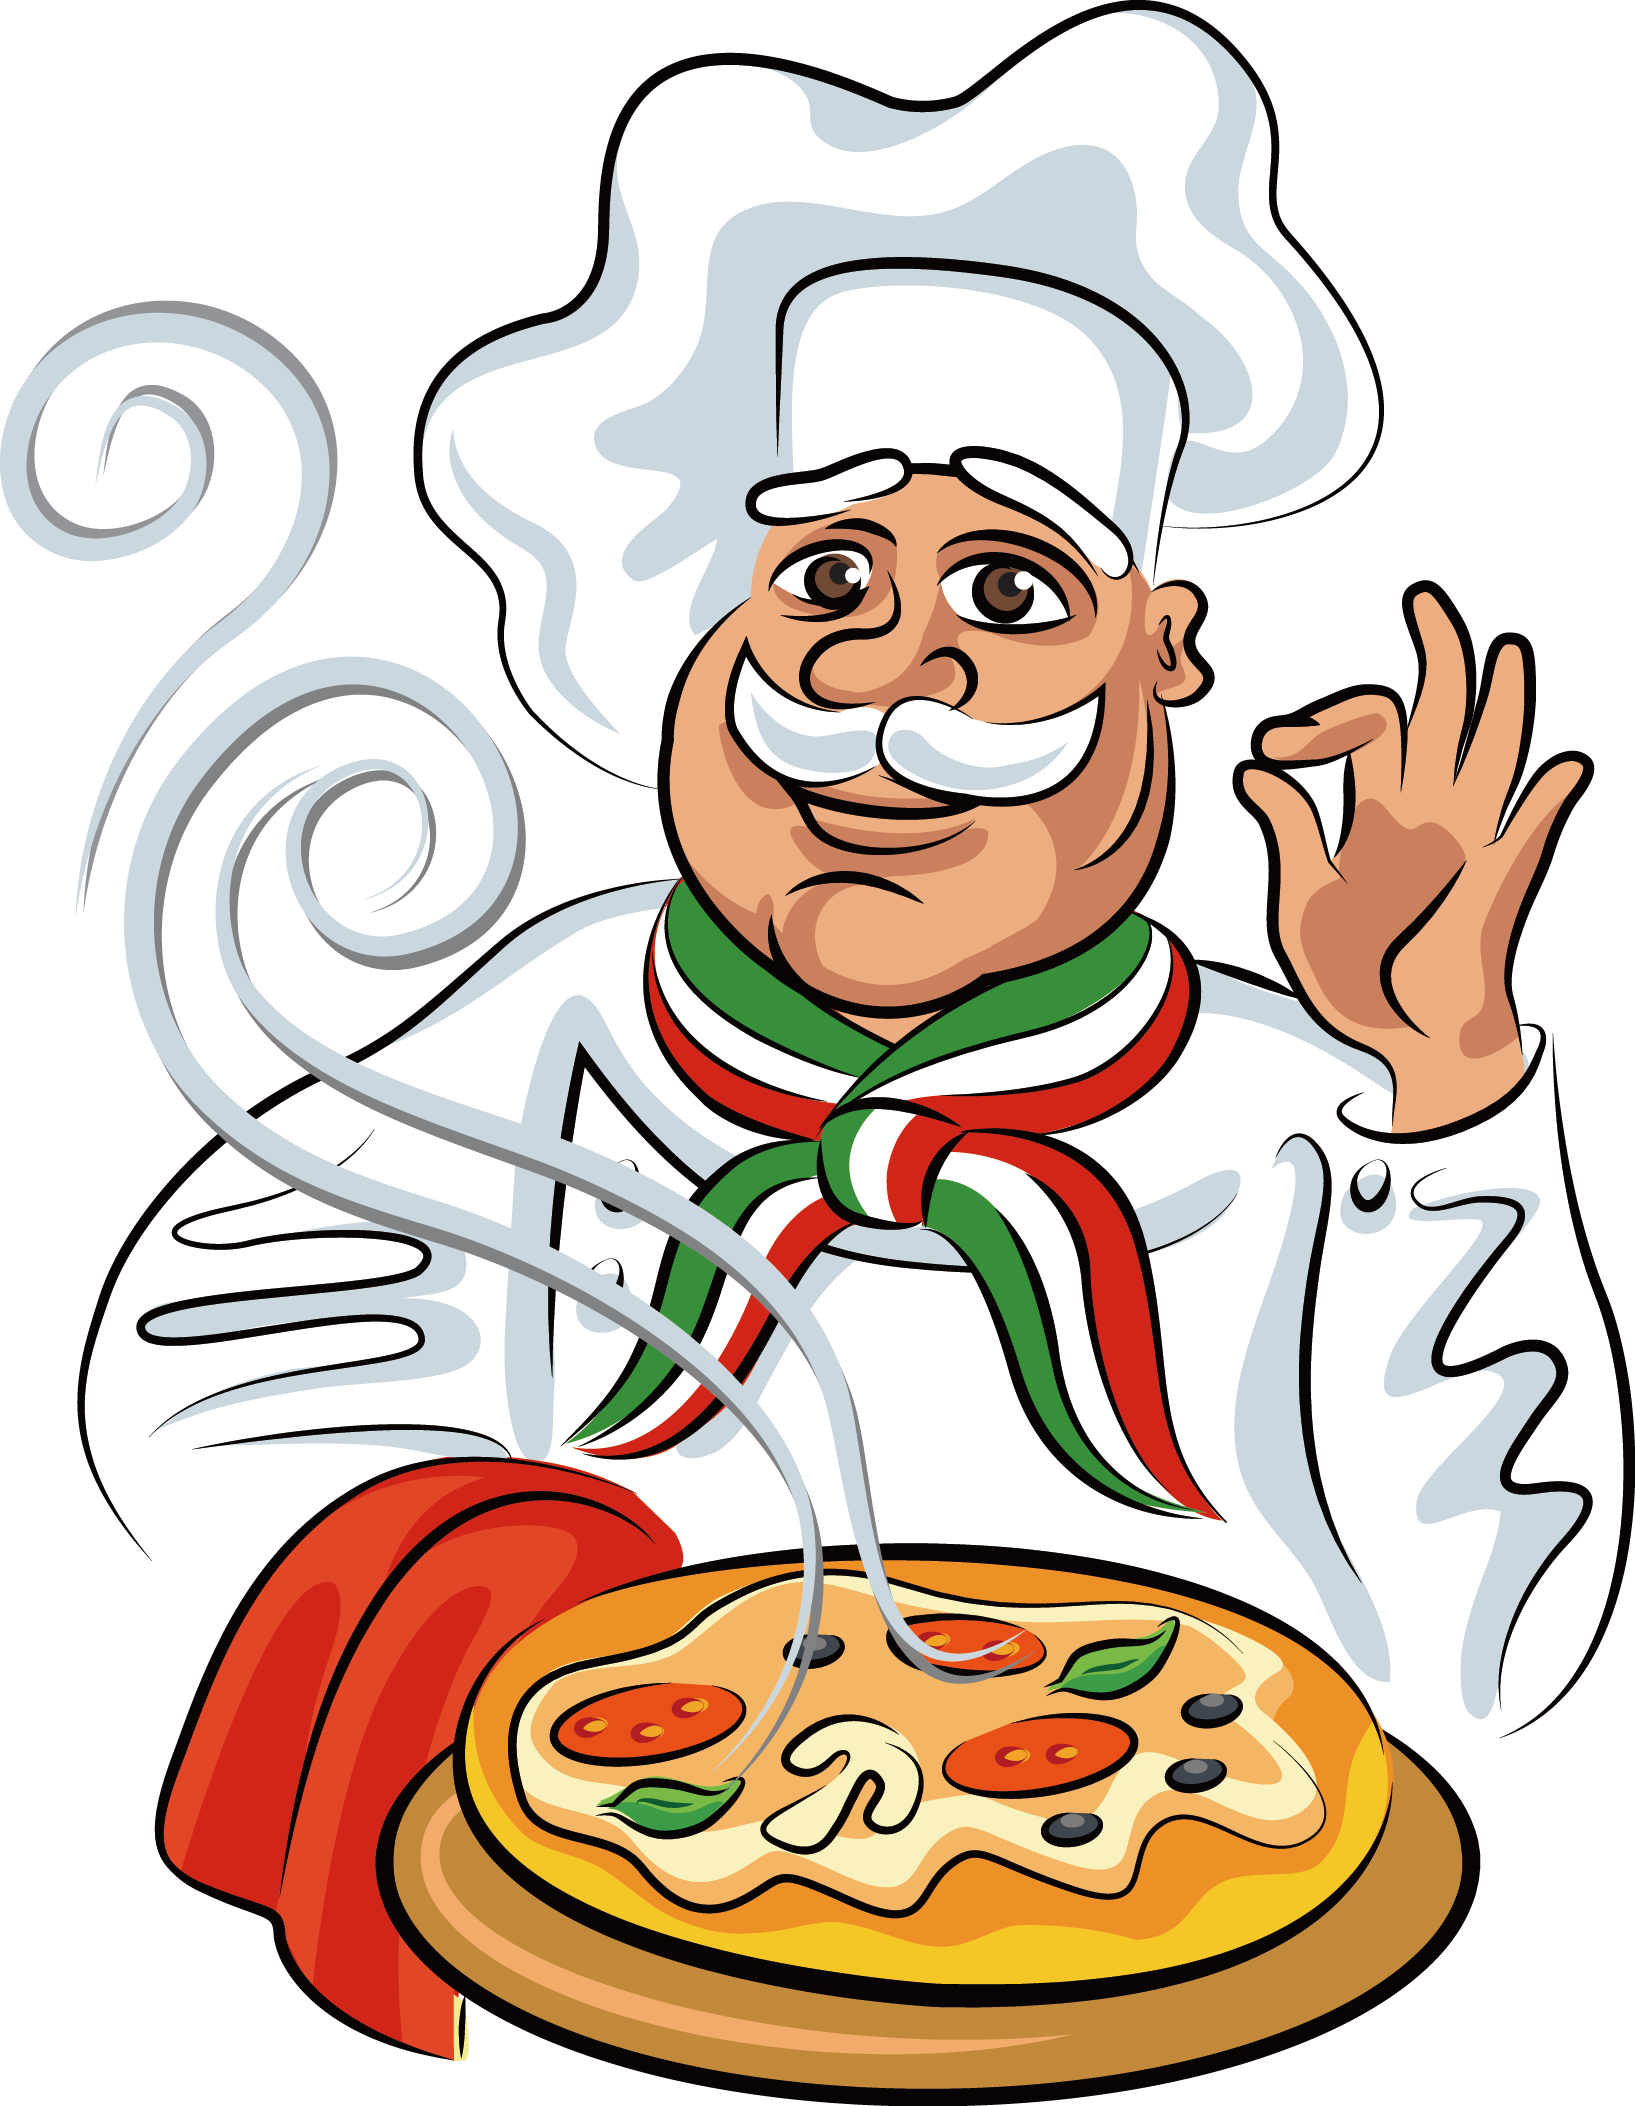 Pizza italian cuisine chef. Italy clipart home cooked food